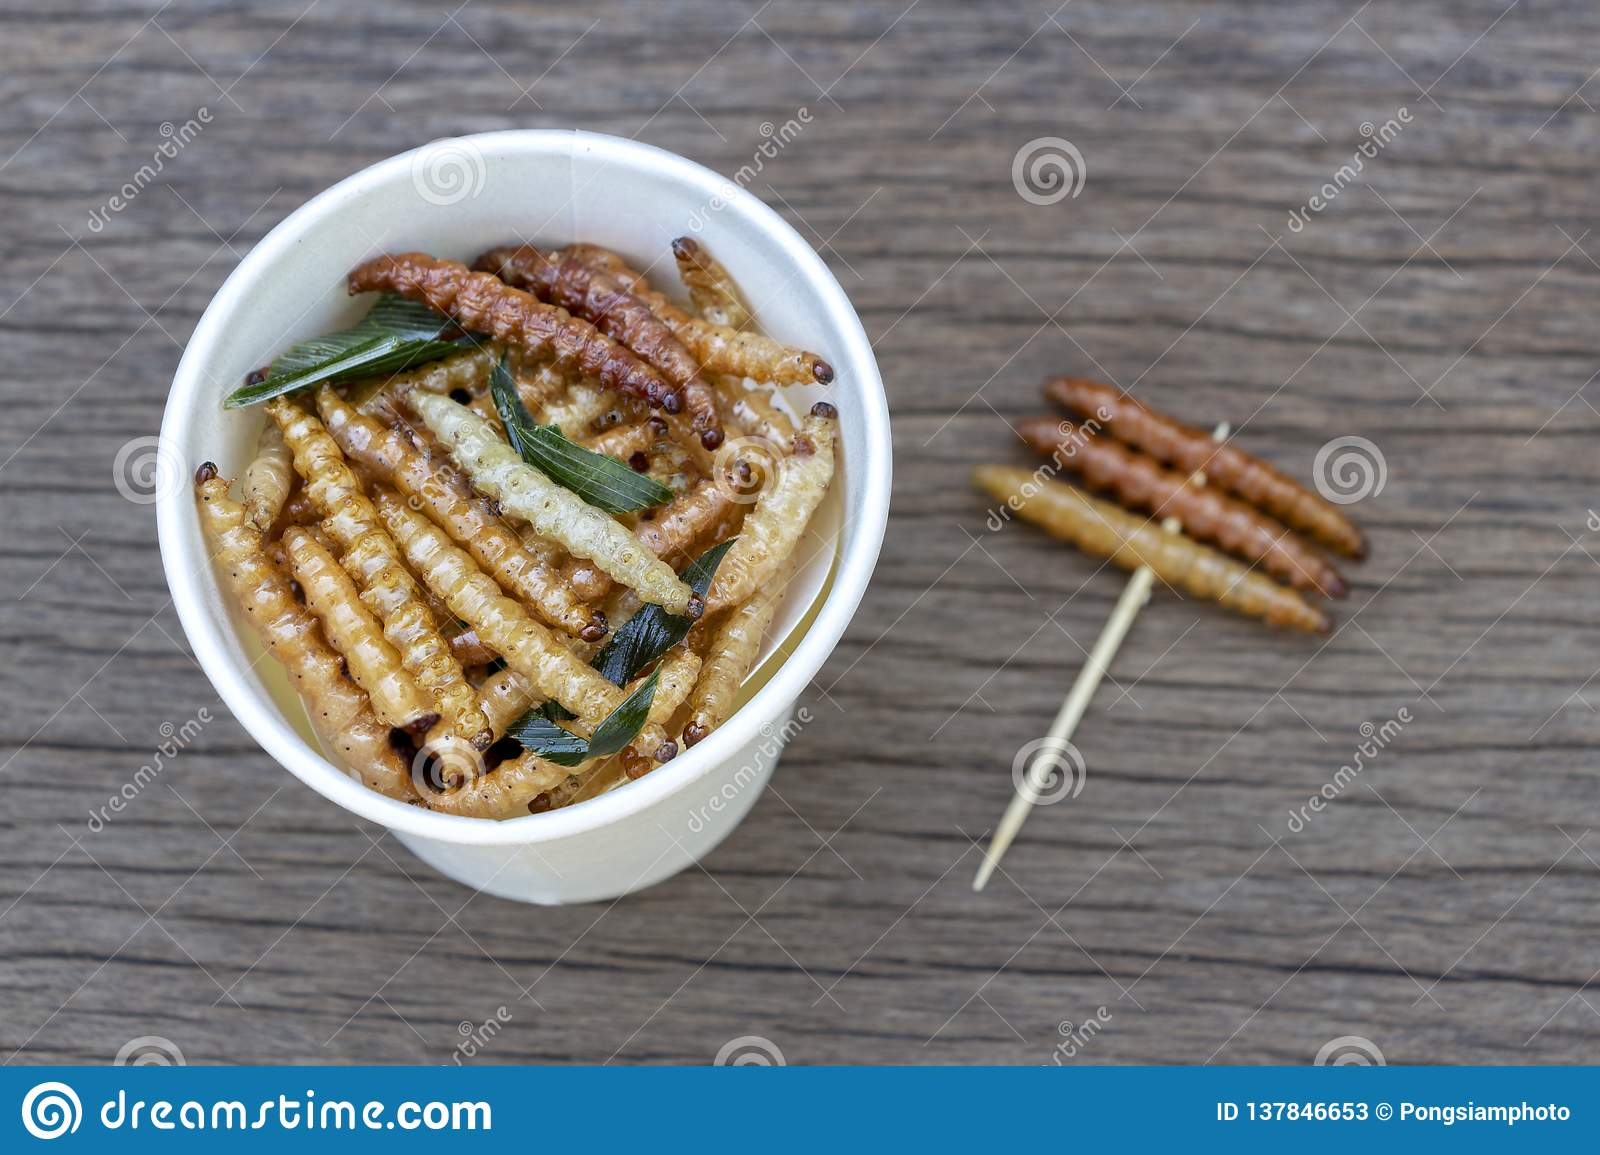 Bamboo edible worm insects crispy or Bamboo Caterpillar in white paper cup on wood table. The concept of protein food sources from